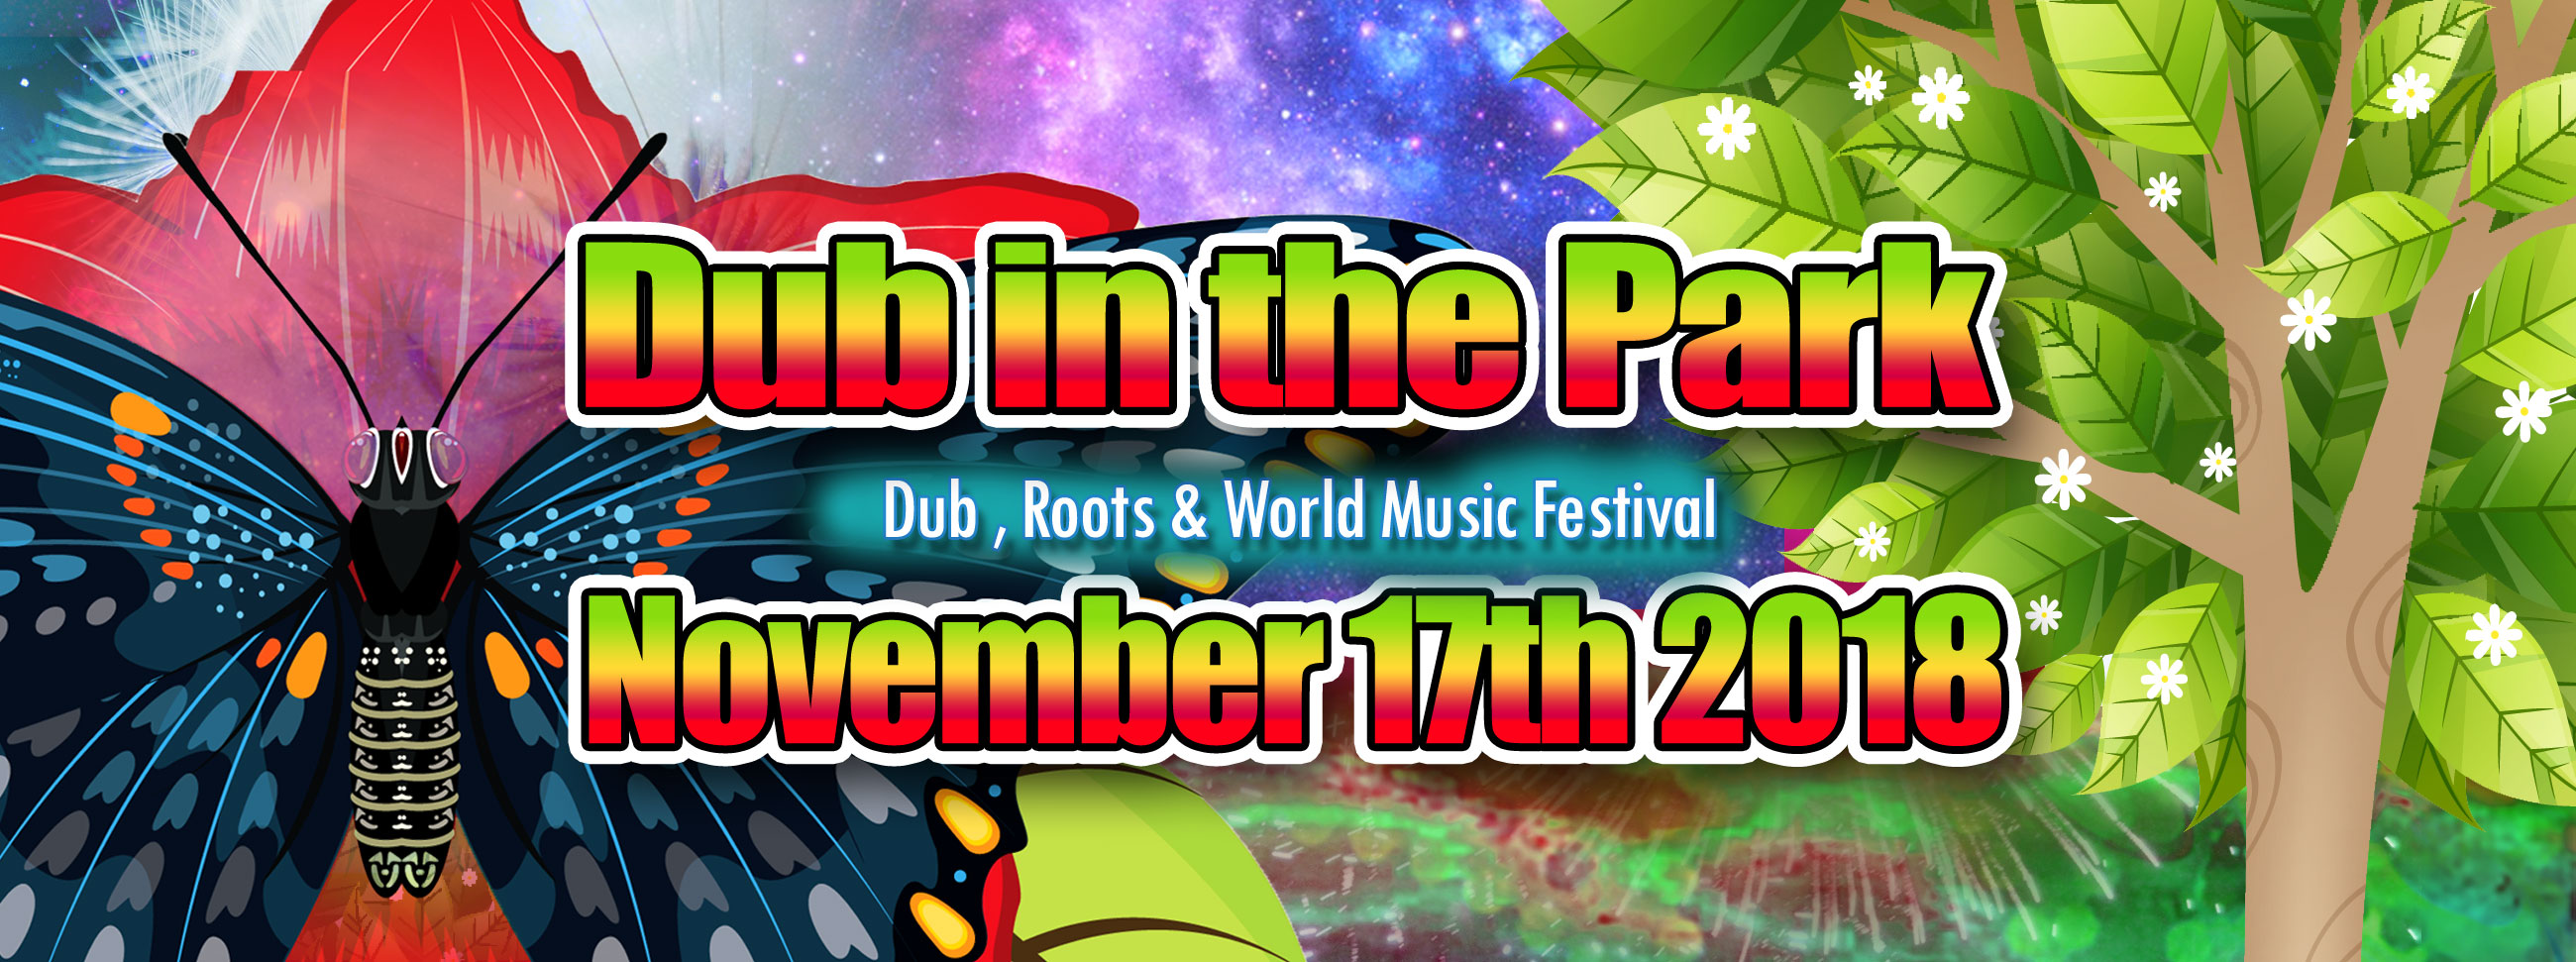 dub-in-the-park-fb-header-2018c